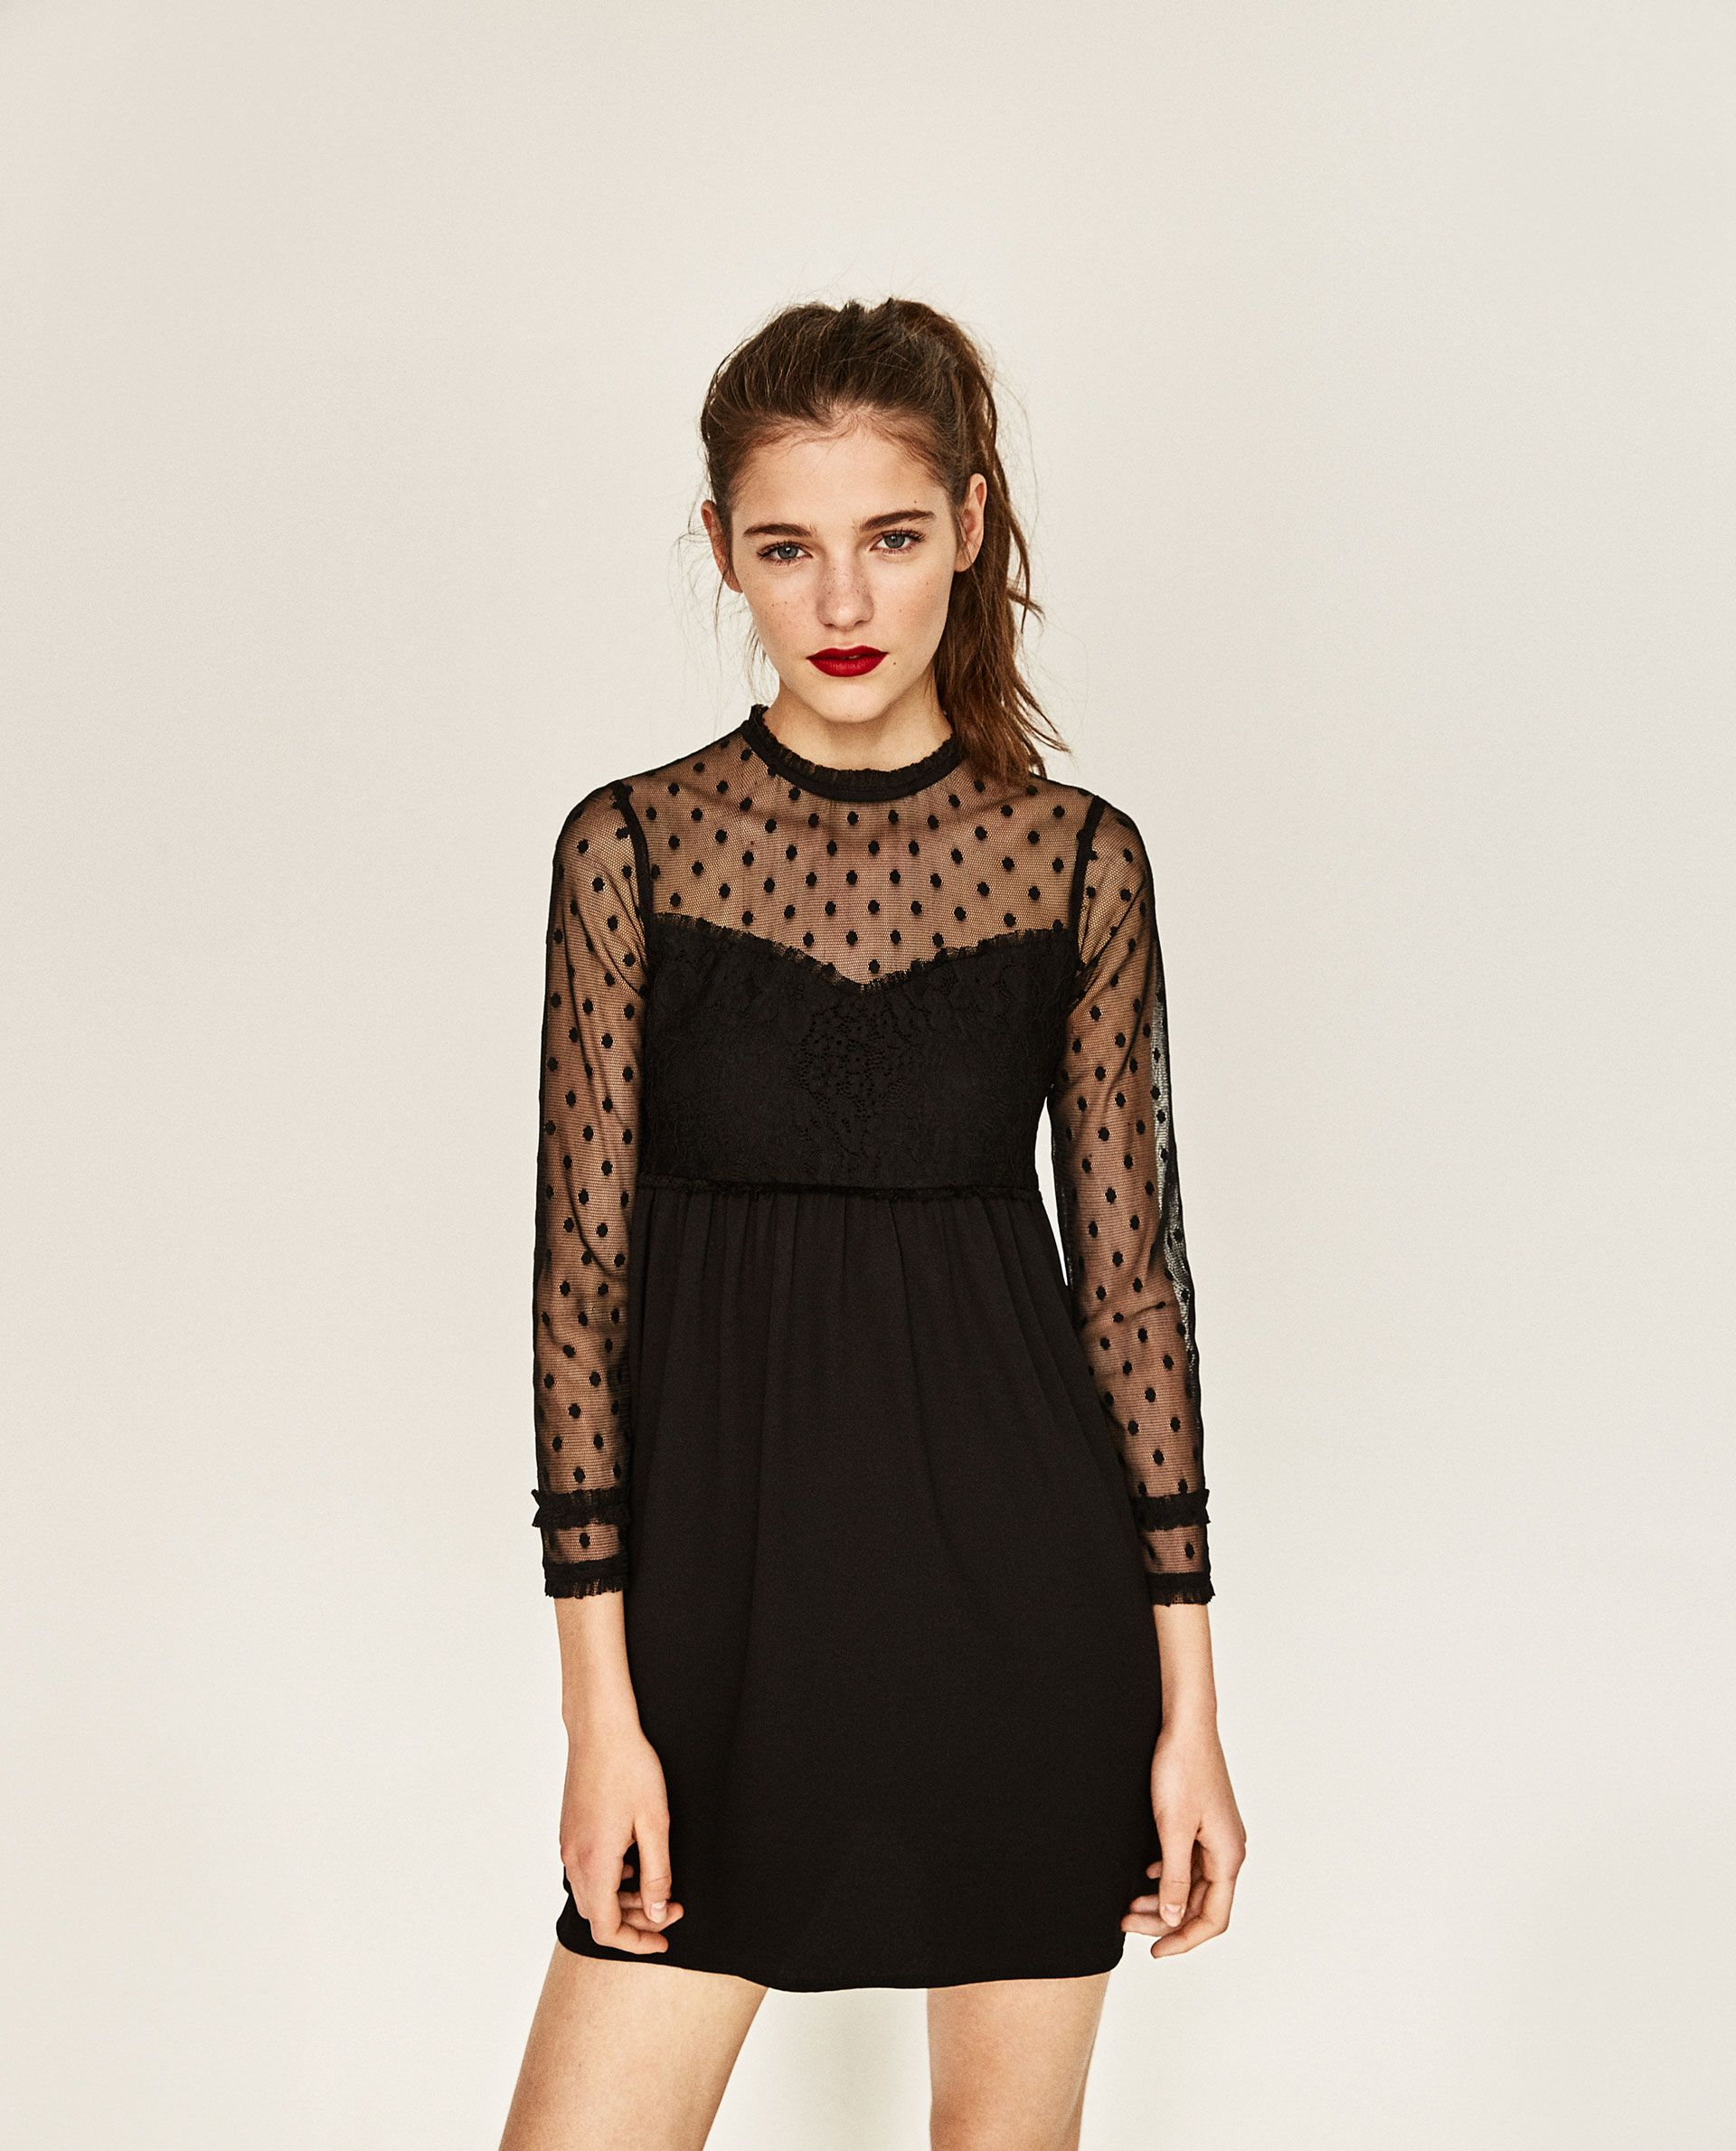 af610bf9 Image 3 of CONTRAST FABRIC LACE DRESS from Zara | Dresses in 2019 ...